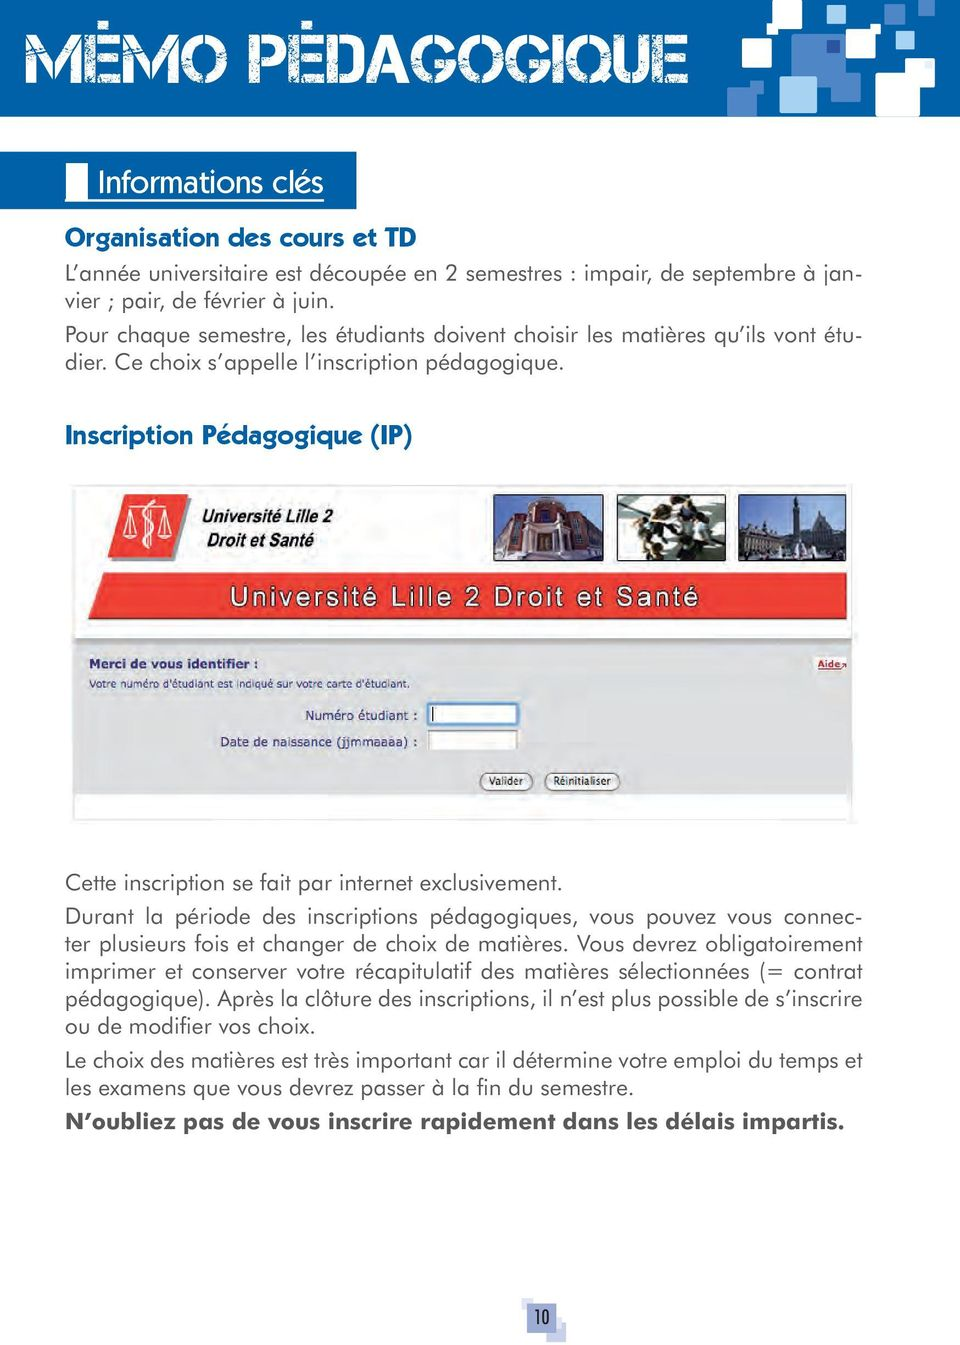 Inscription Pédagogique (IP) Cette inscription se fait par internet exclusivement.